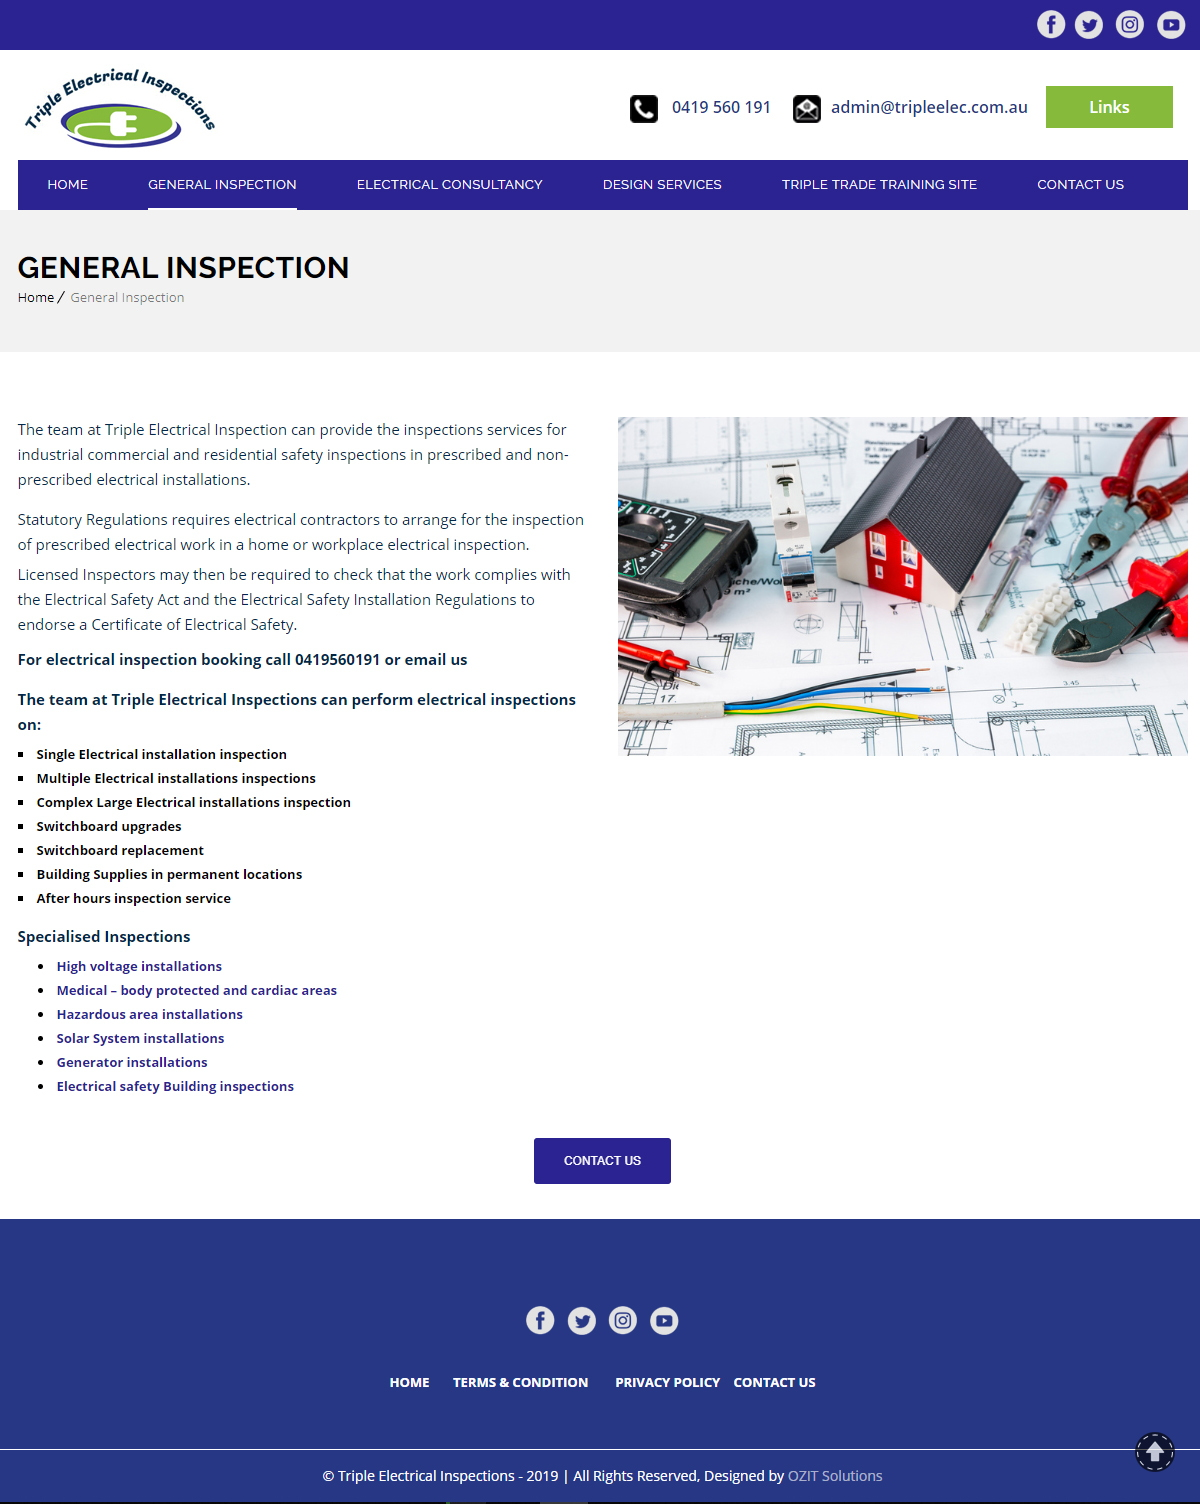 Triple Electrical Inspections